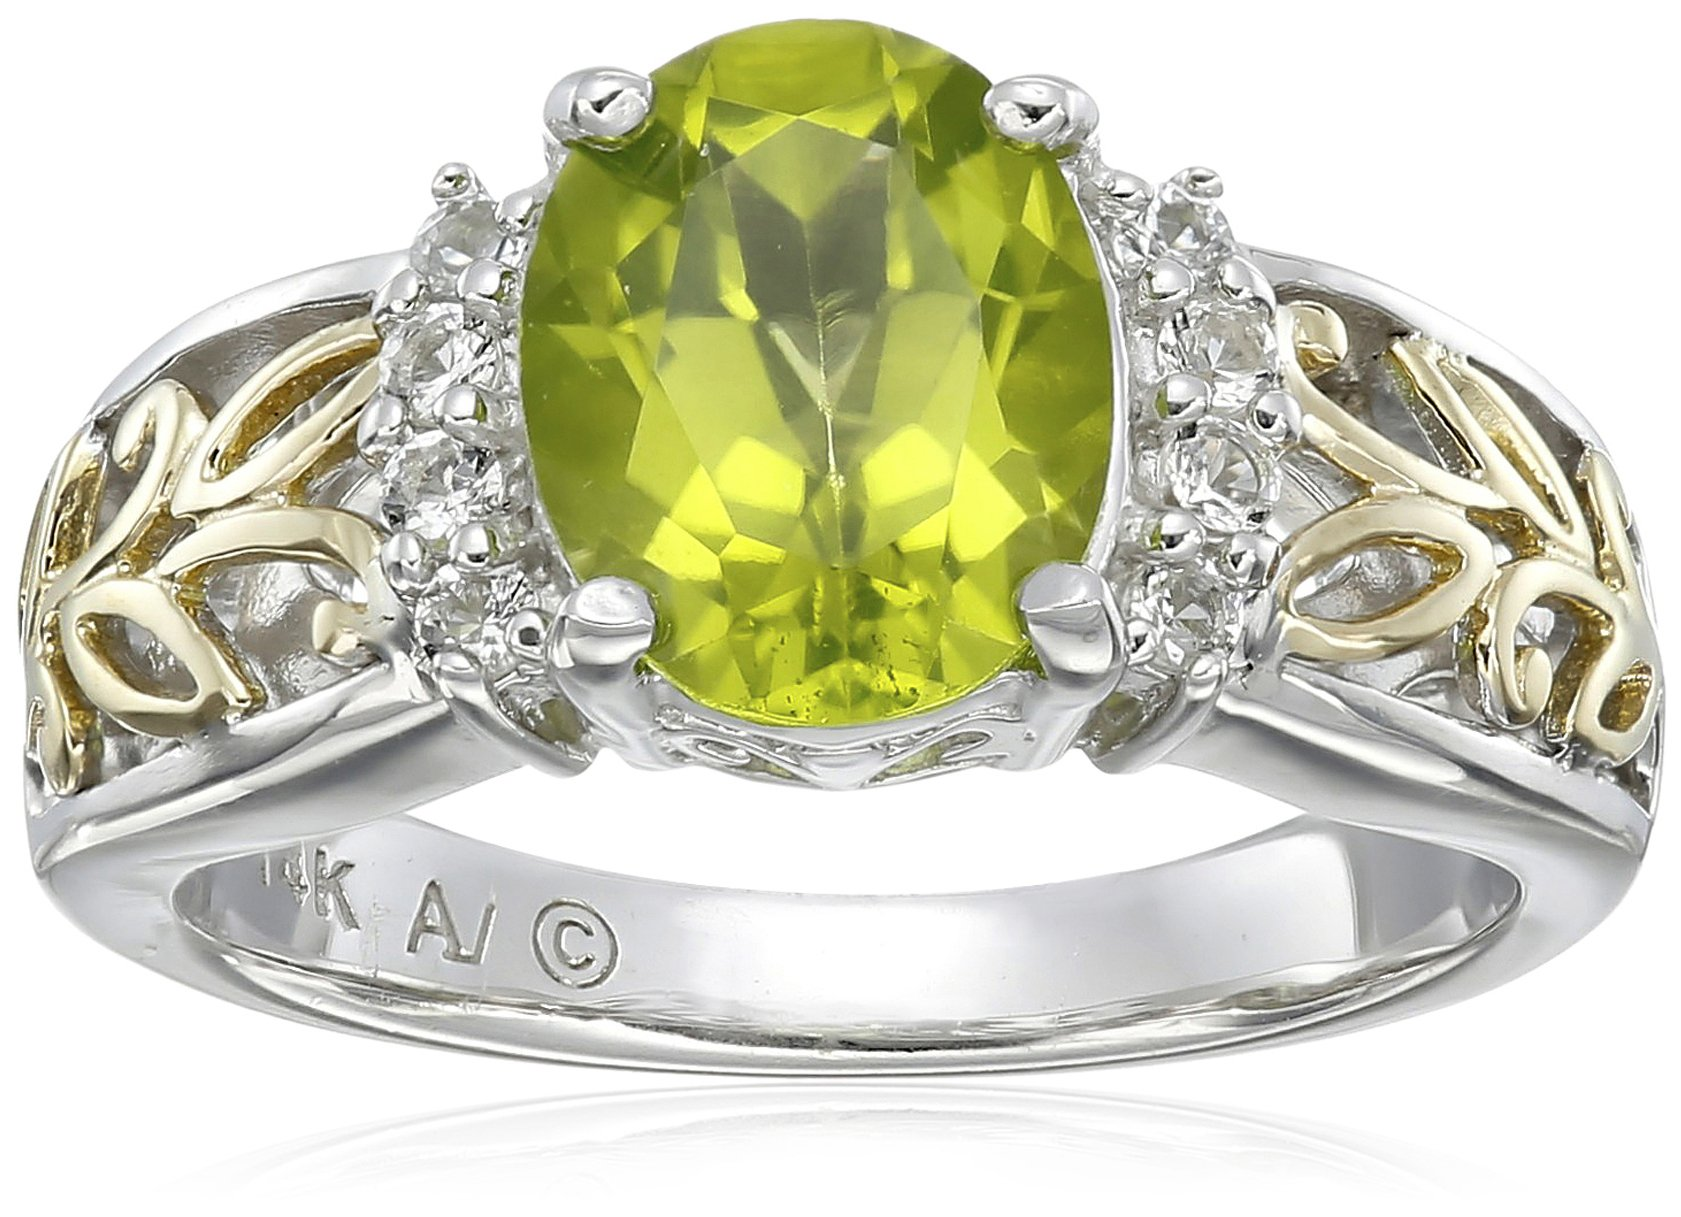 Sterling Silver and 14k Yellow Gold Oval Peridot and White Topaz Ring, Size 7